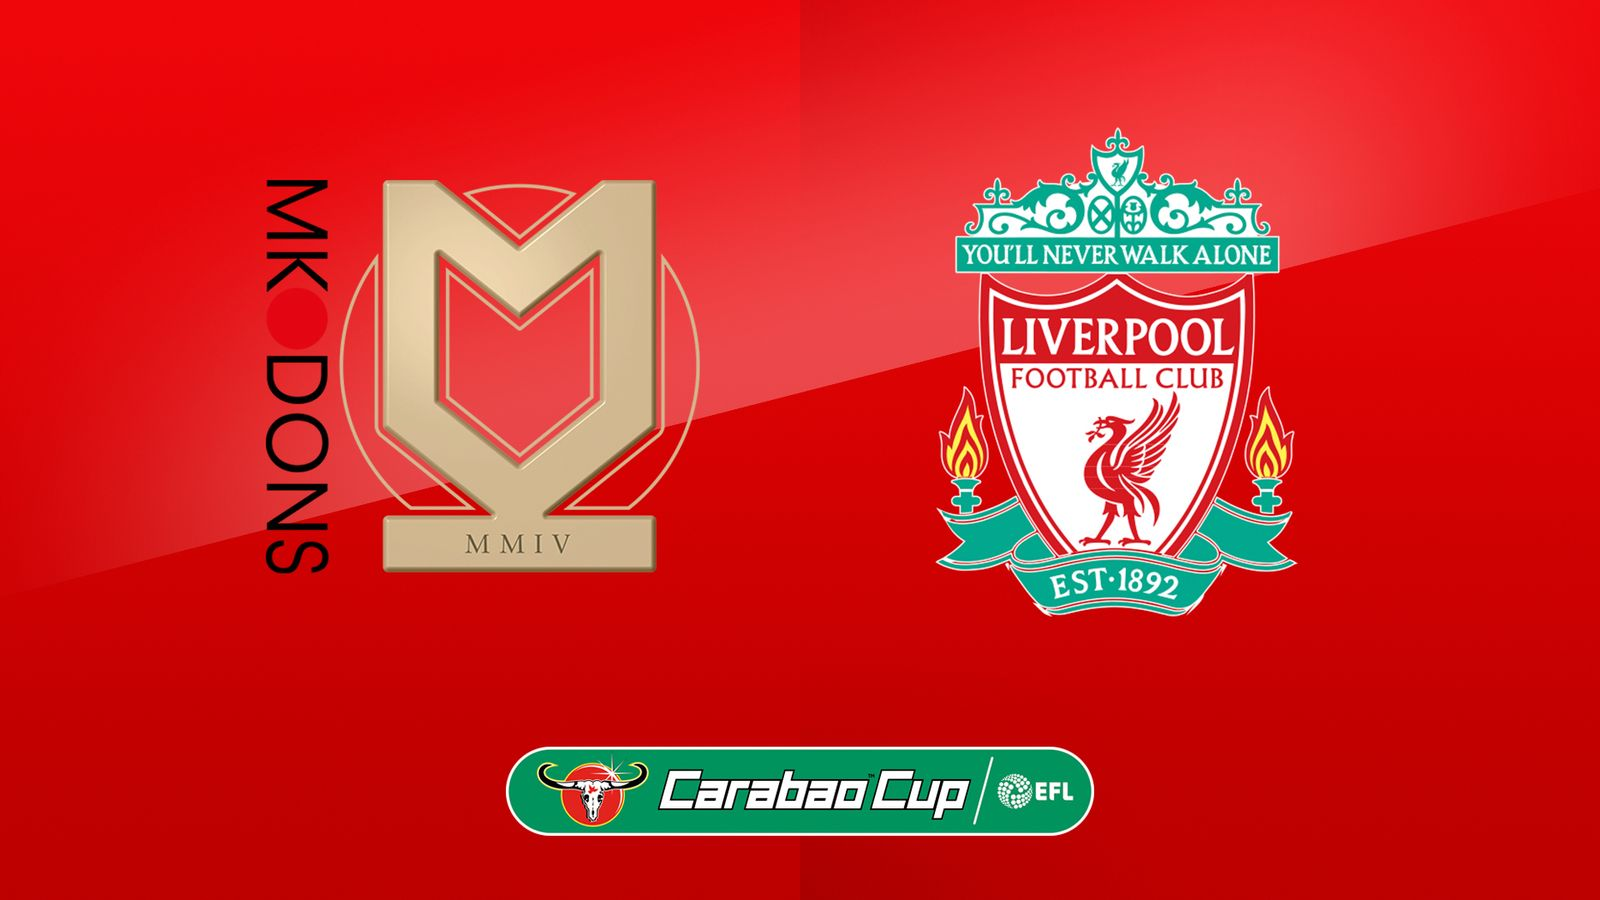 Match Preview - MK Dons vs Liverpool | 25 Sep 2019